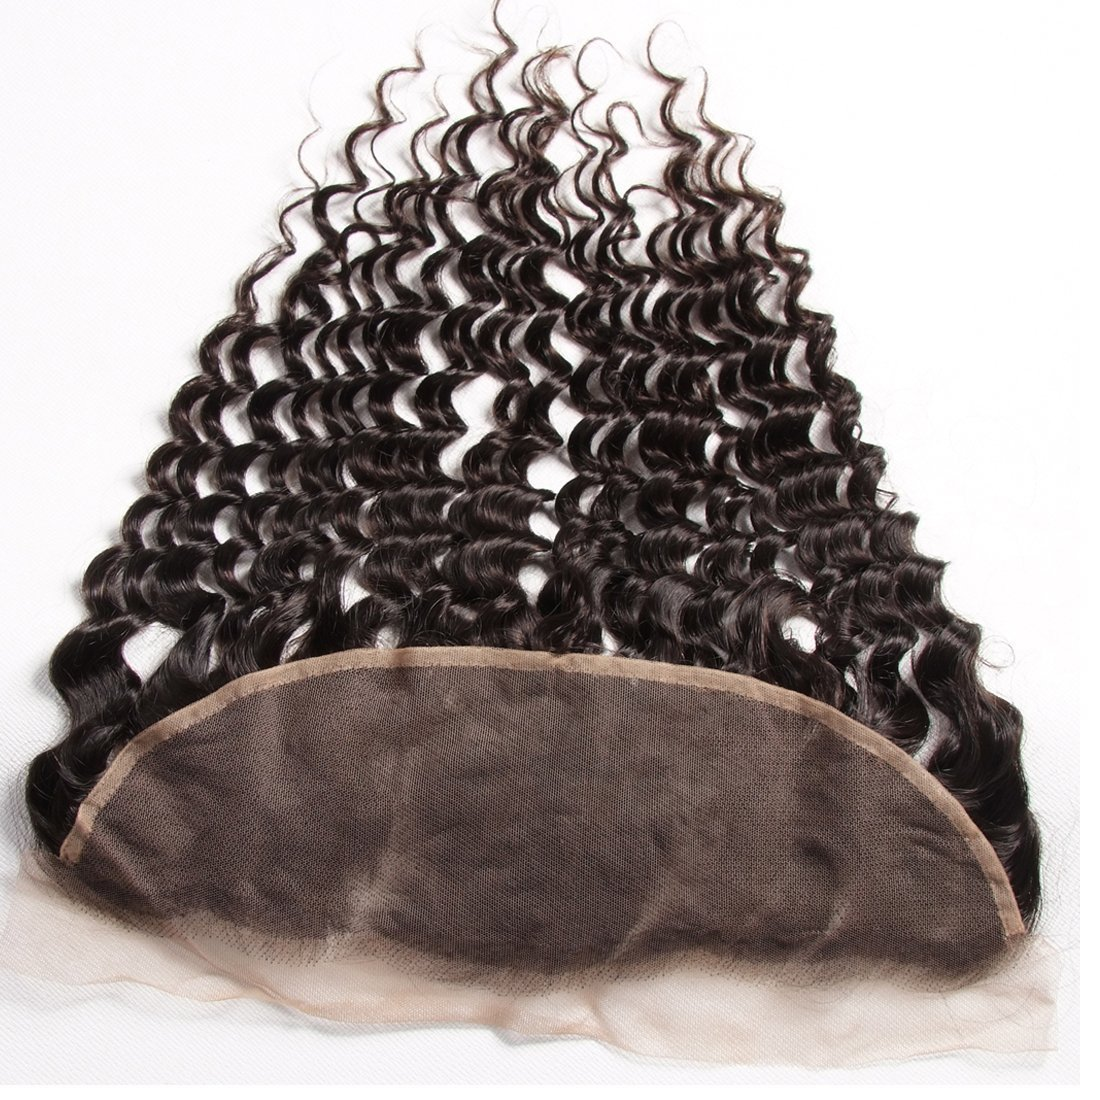 Ali Julia Hair Brazilian Virgin Deep Curly Wave Hair Bundles with Frontal Lace Closure 100% Unprocessed Human Hair Weave Extensions Natural Color (22 24 26+20 inch, Frontal with Bundles) by Yilian (Image #6)